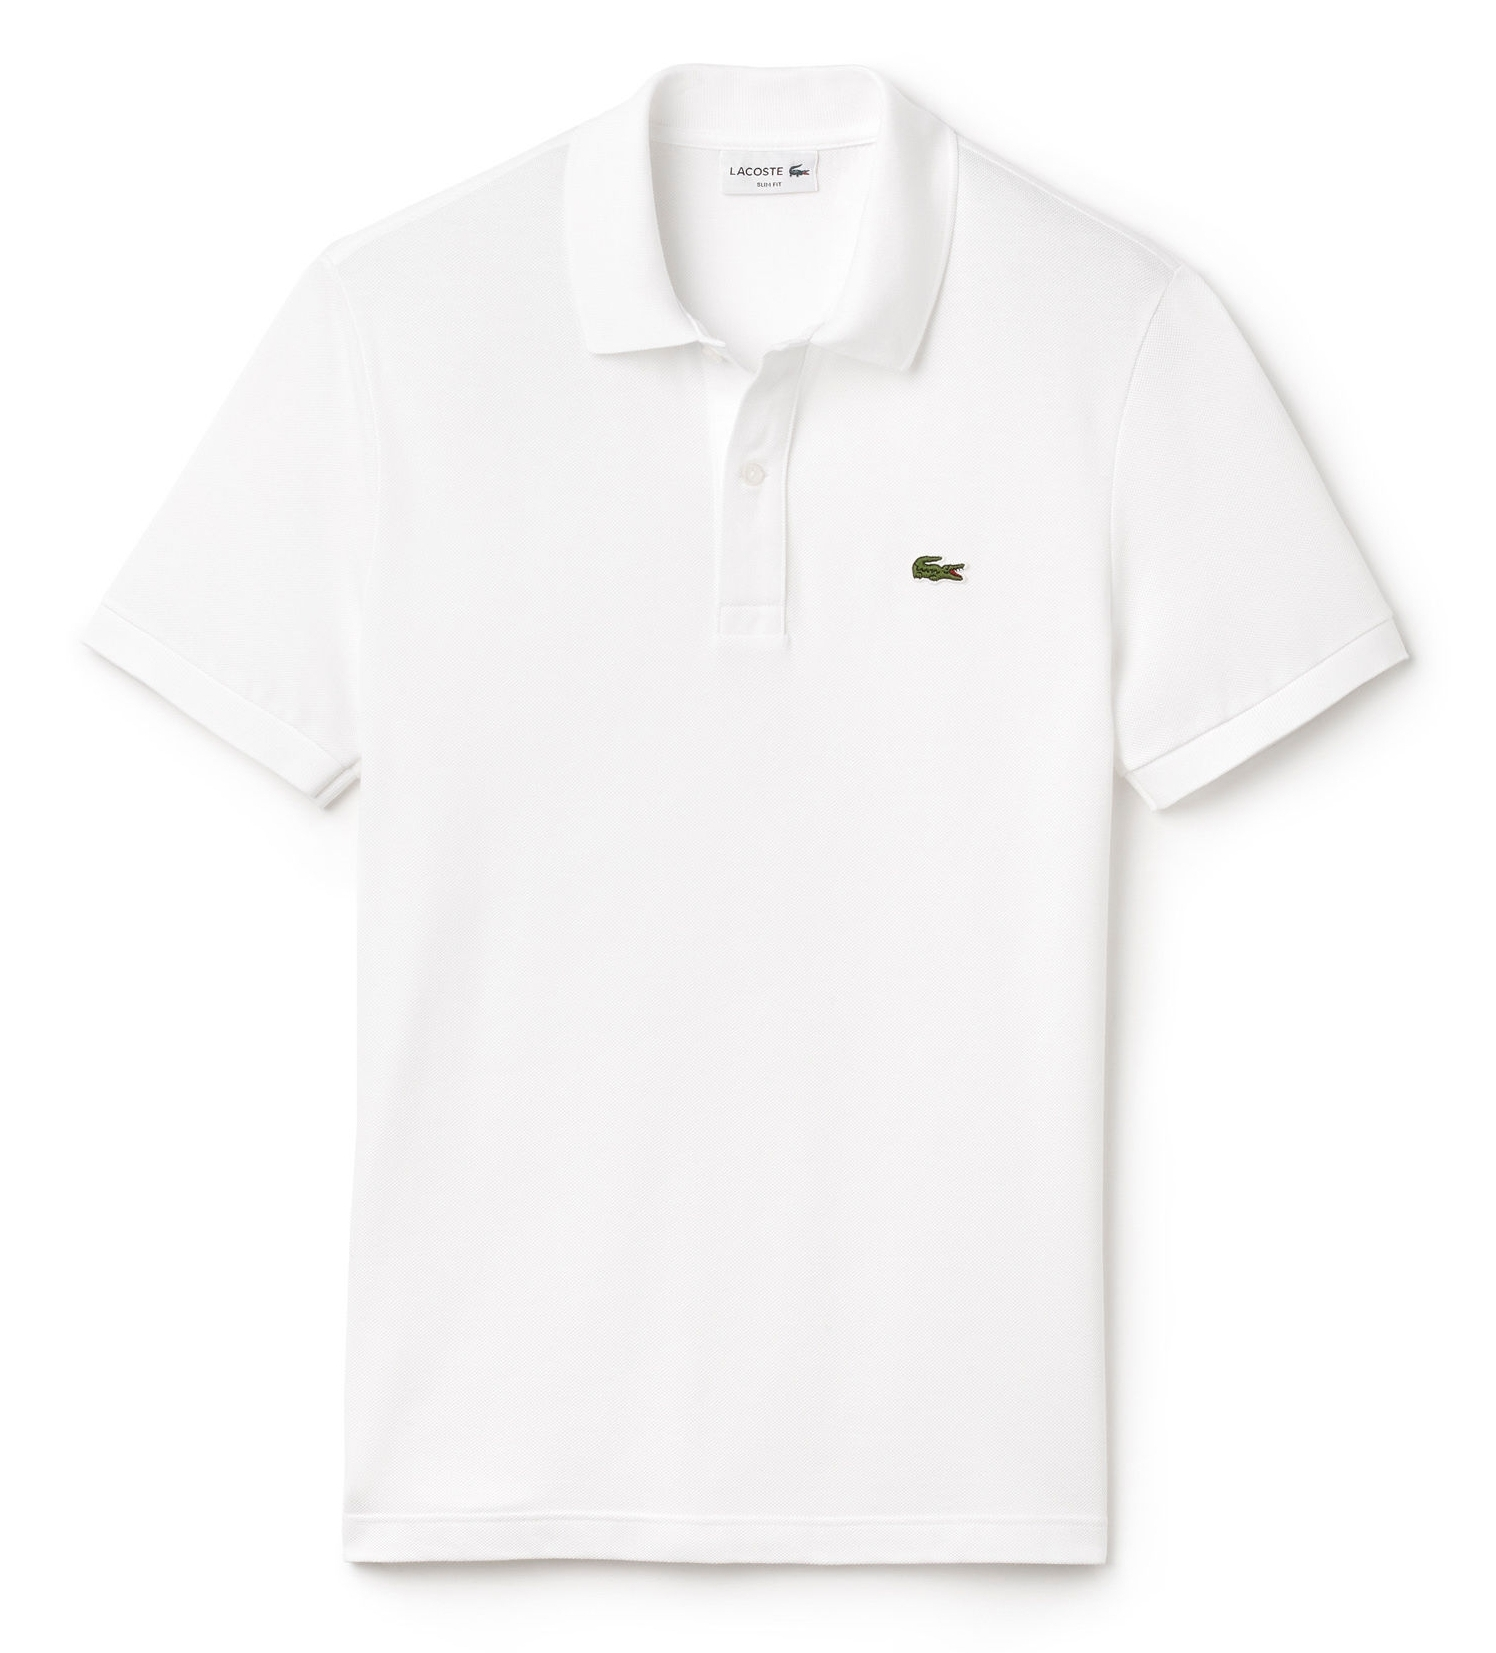 polo lacoste slim fit blanc vetements homme basique